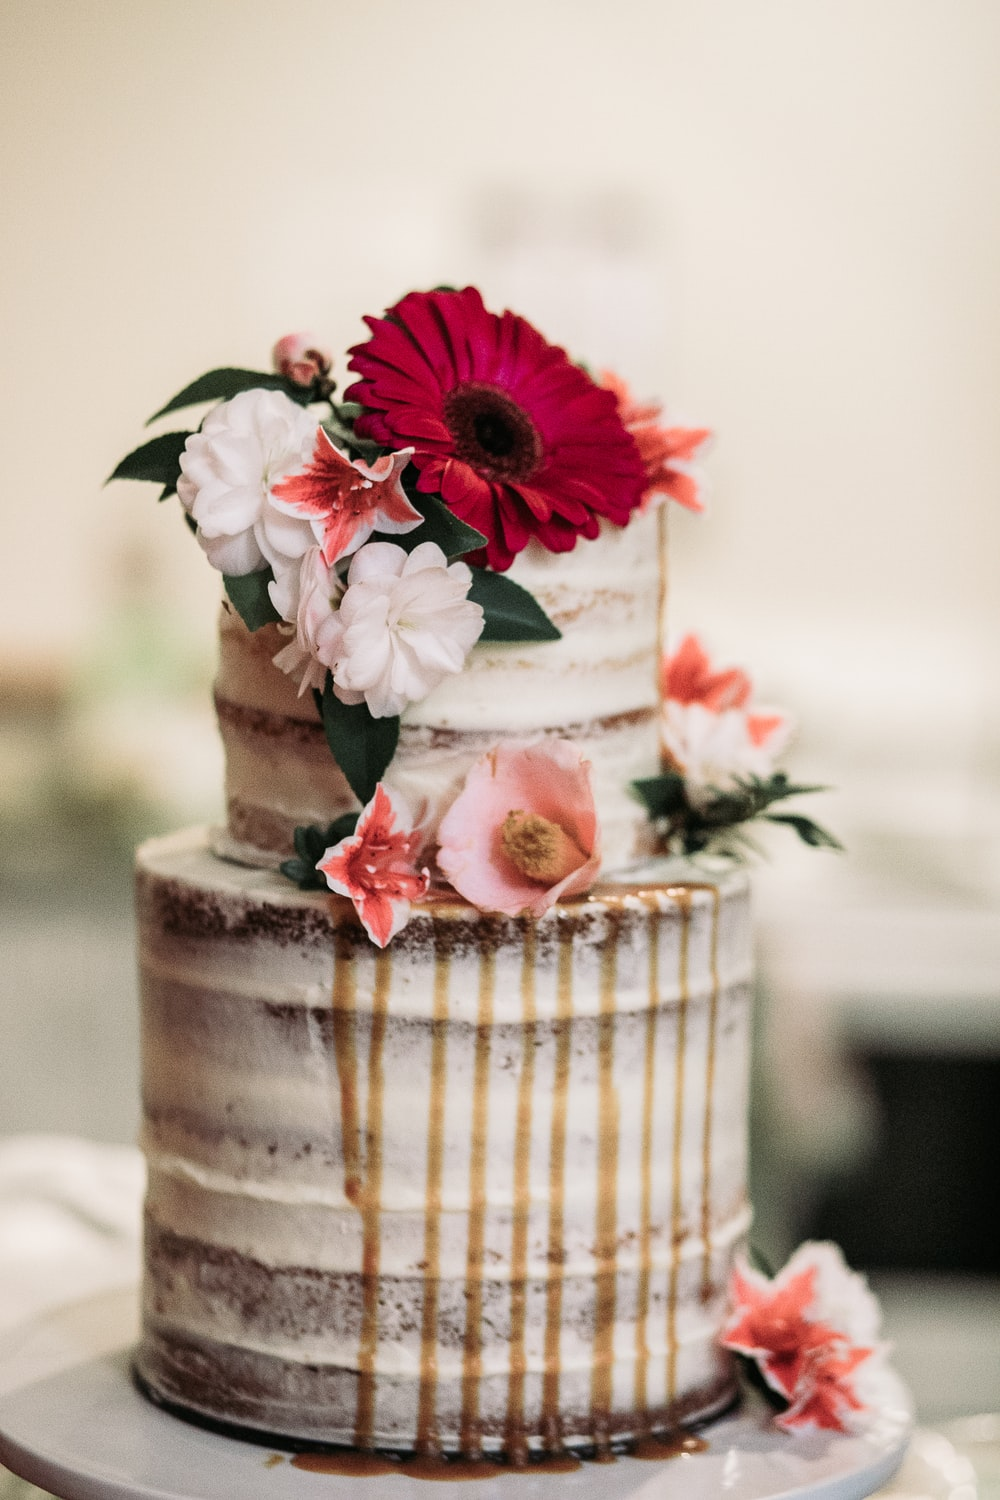 white icing-covered cake with flowers on top